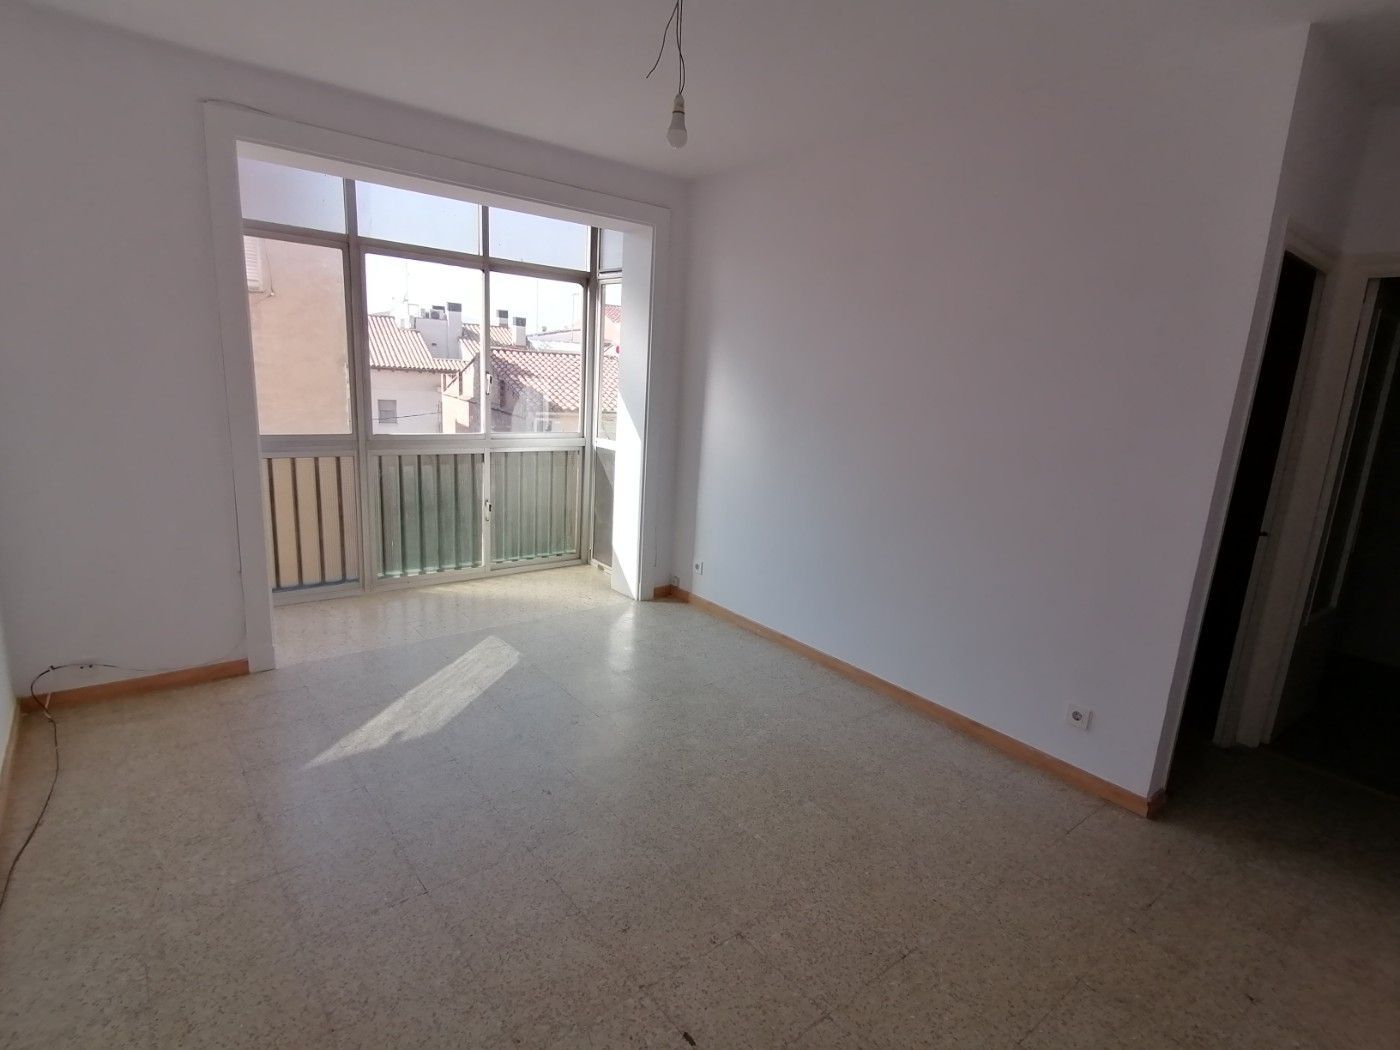 Rent Flat in Rambla anselm clave, 26. Pis a la rambla  anselm clave